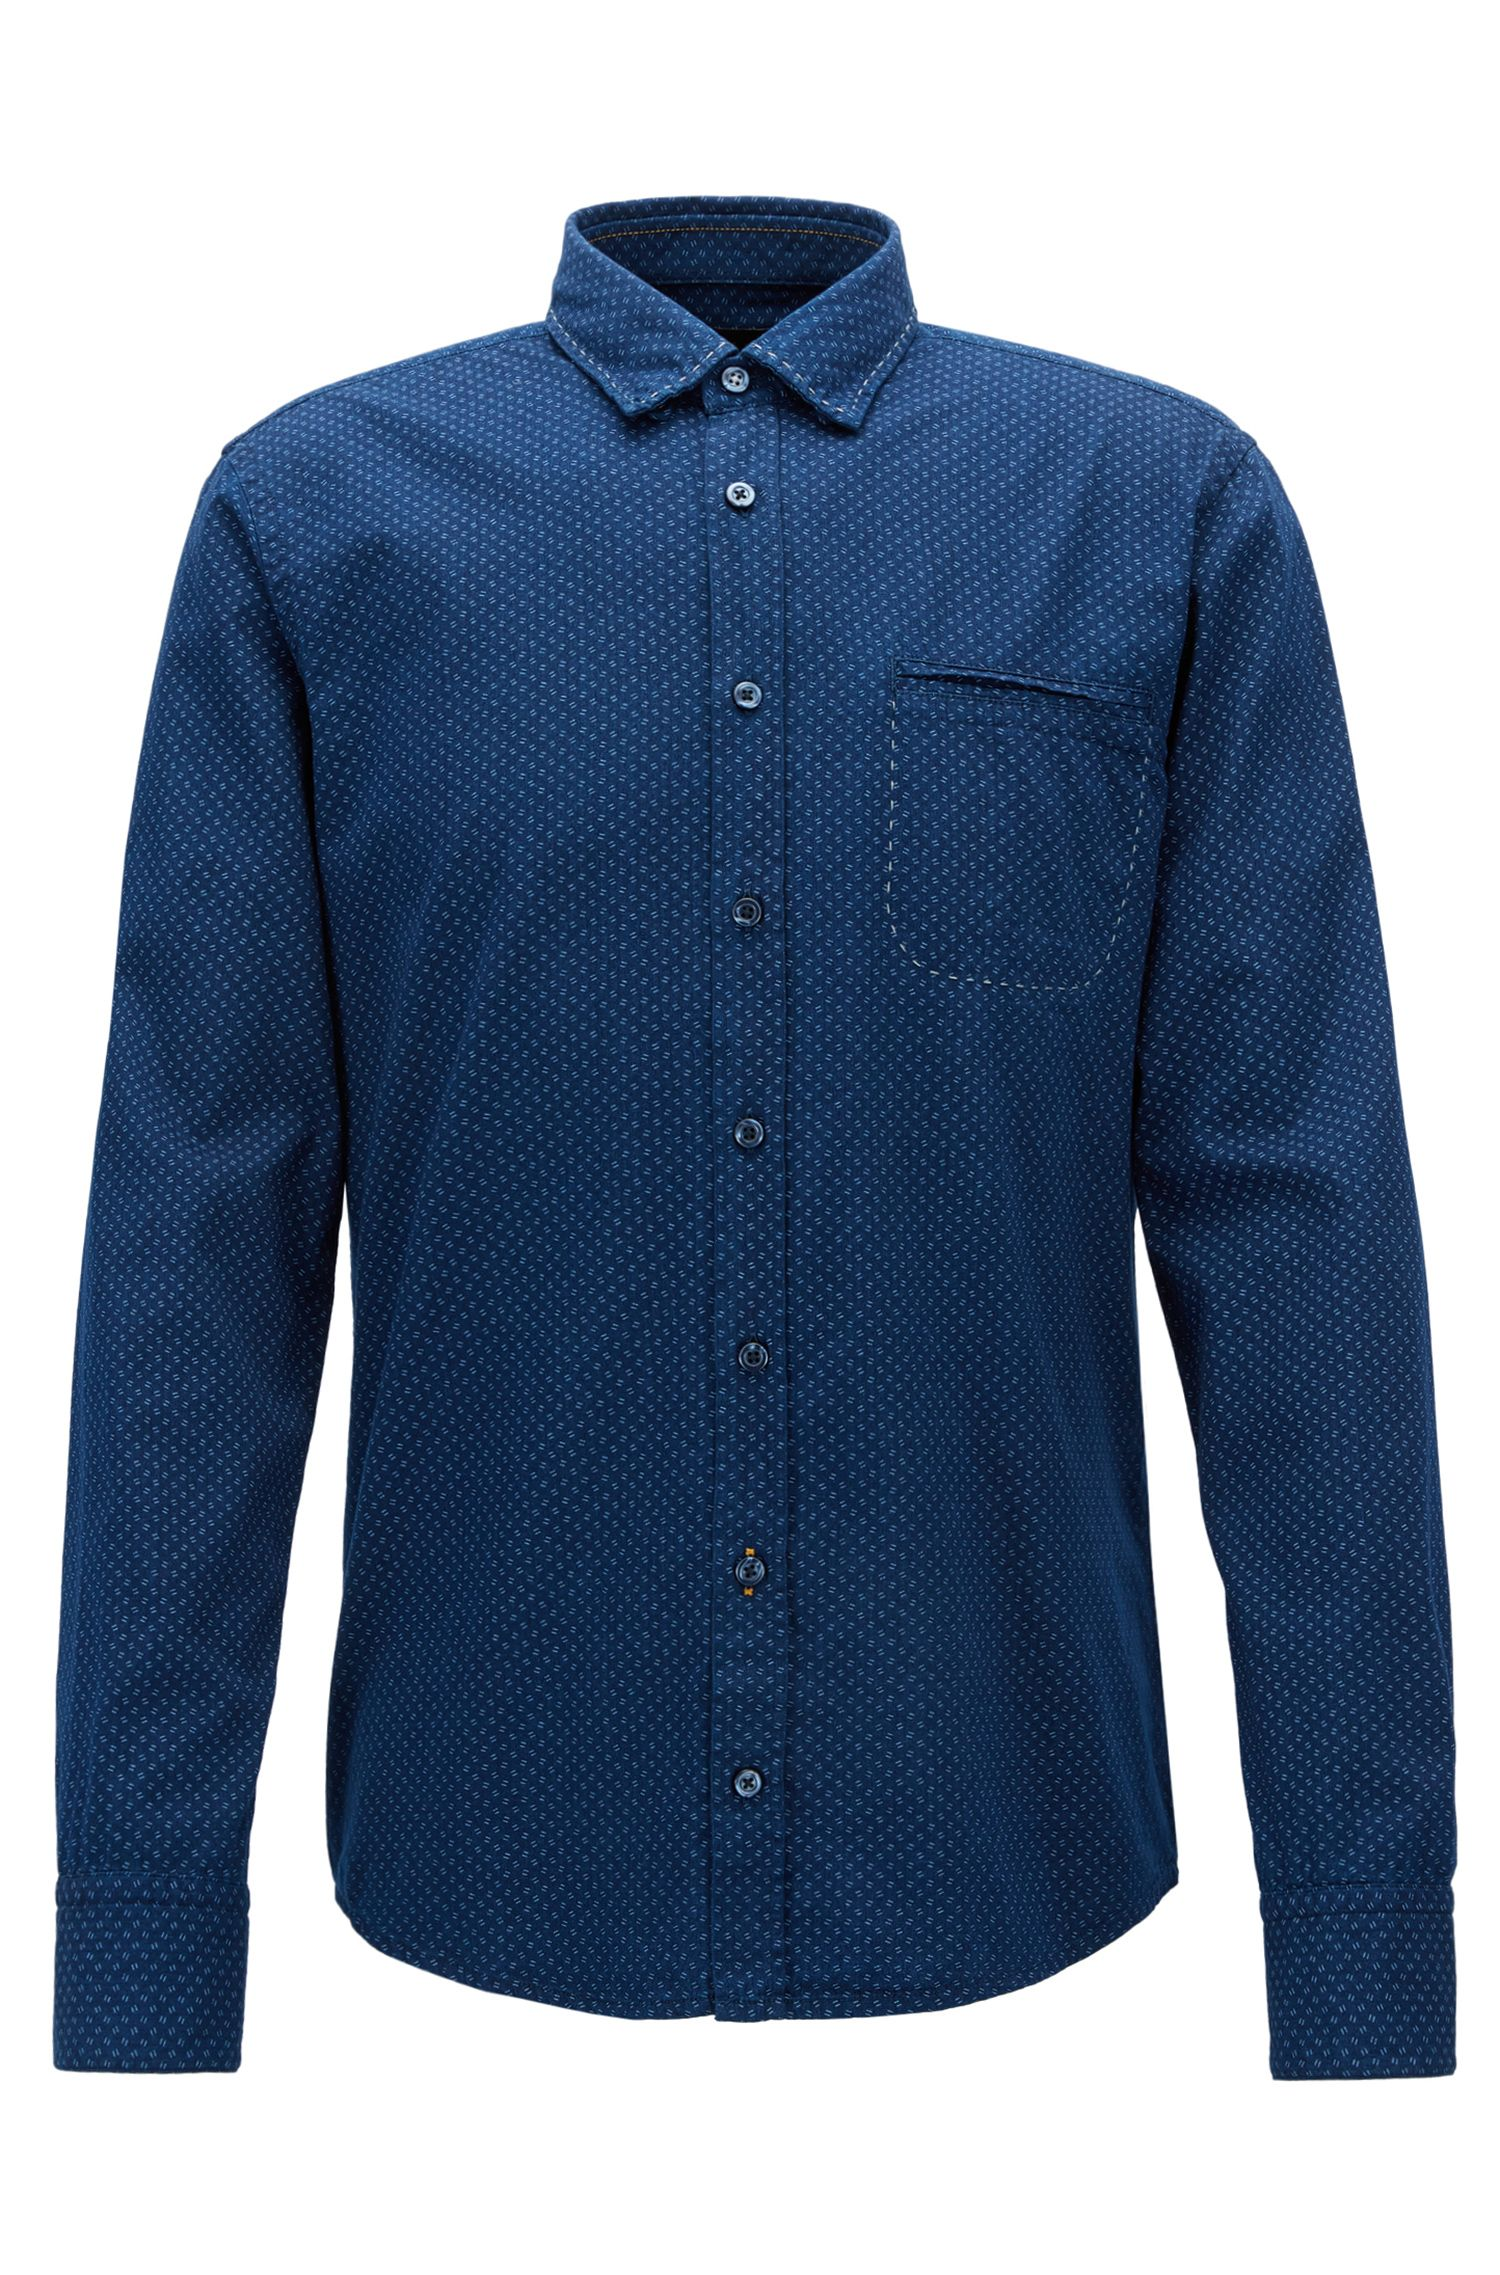 Regular-fit shirt in printed cotton chambray